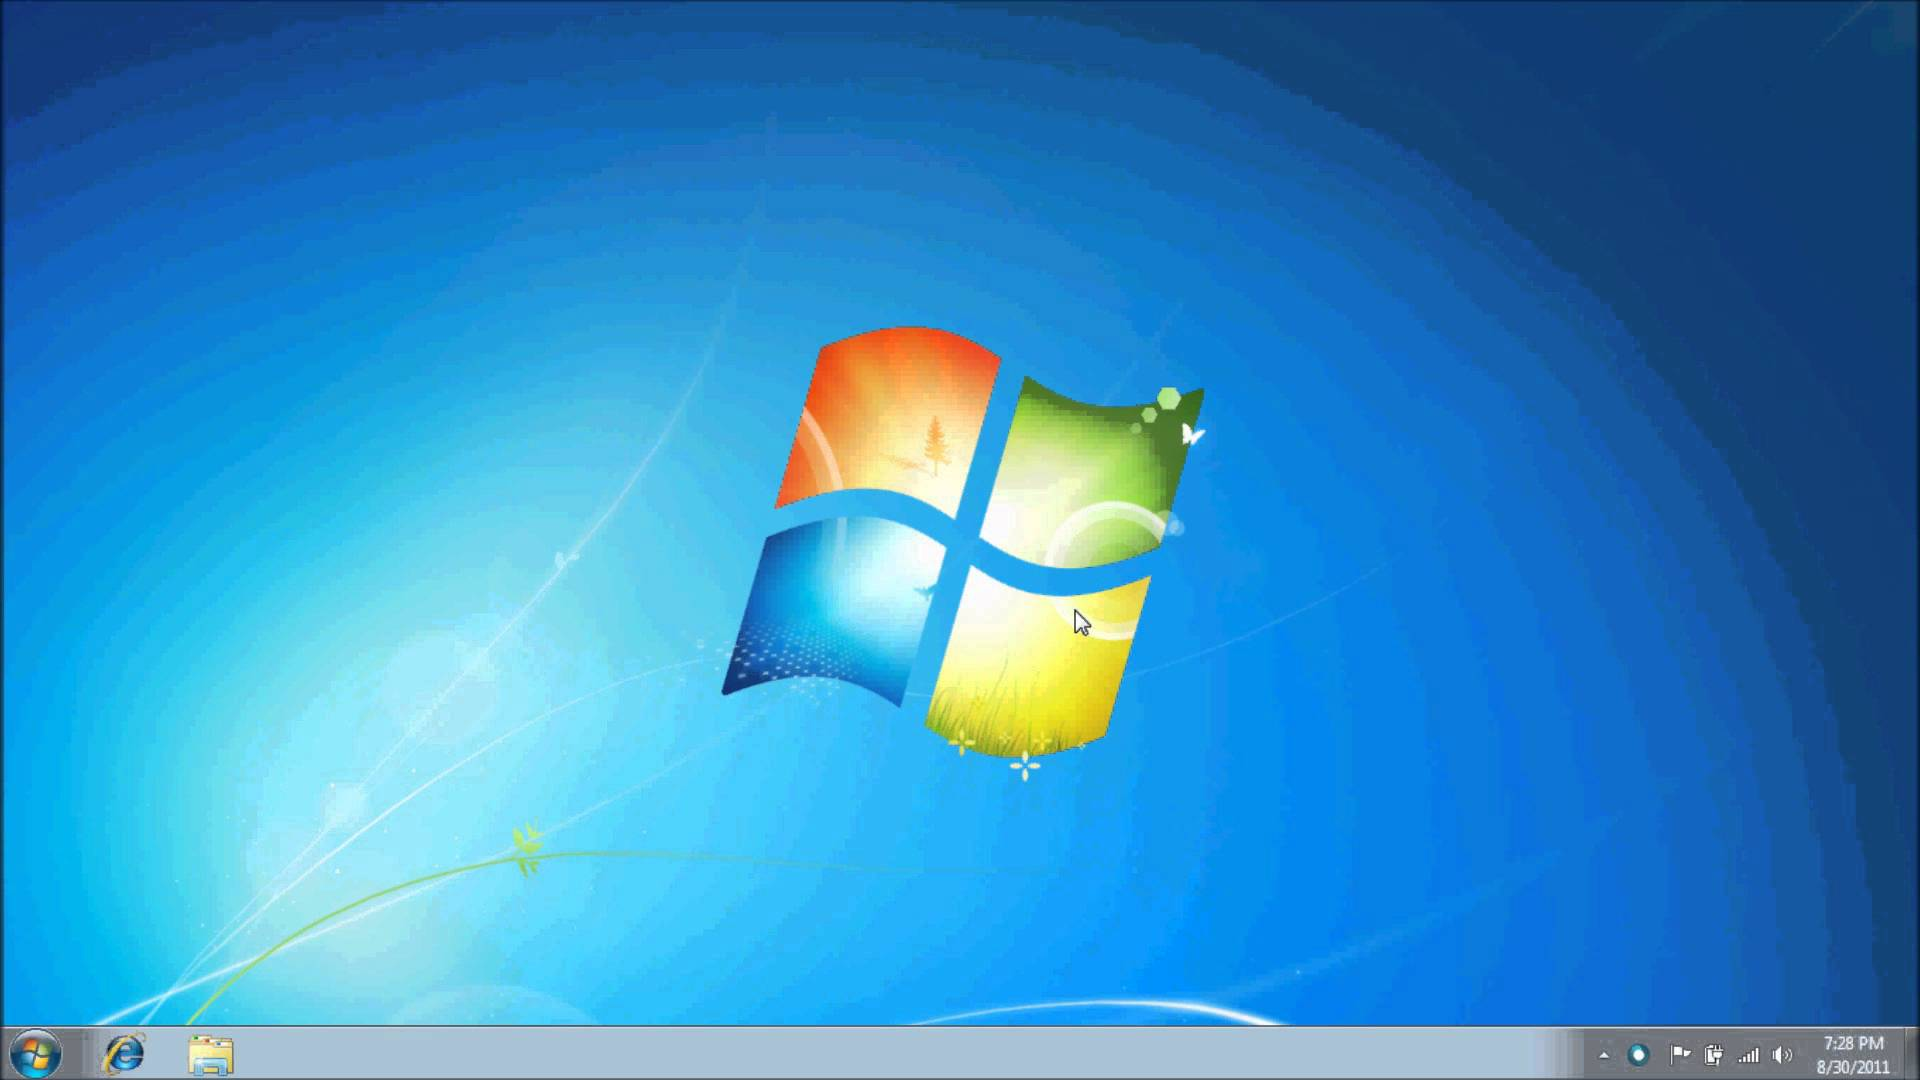 13 Restore Desktop Icons Windows 7 Images